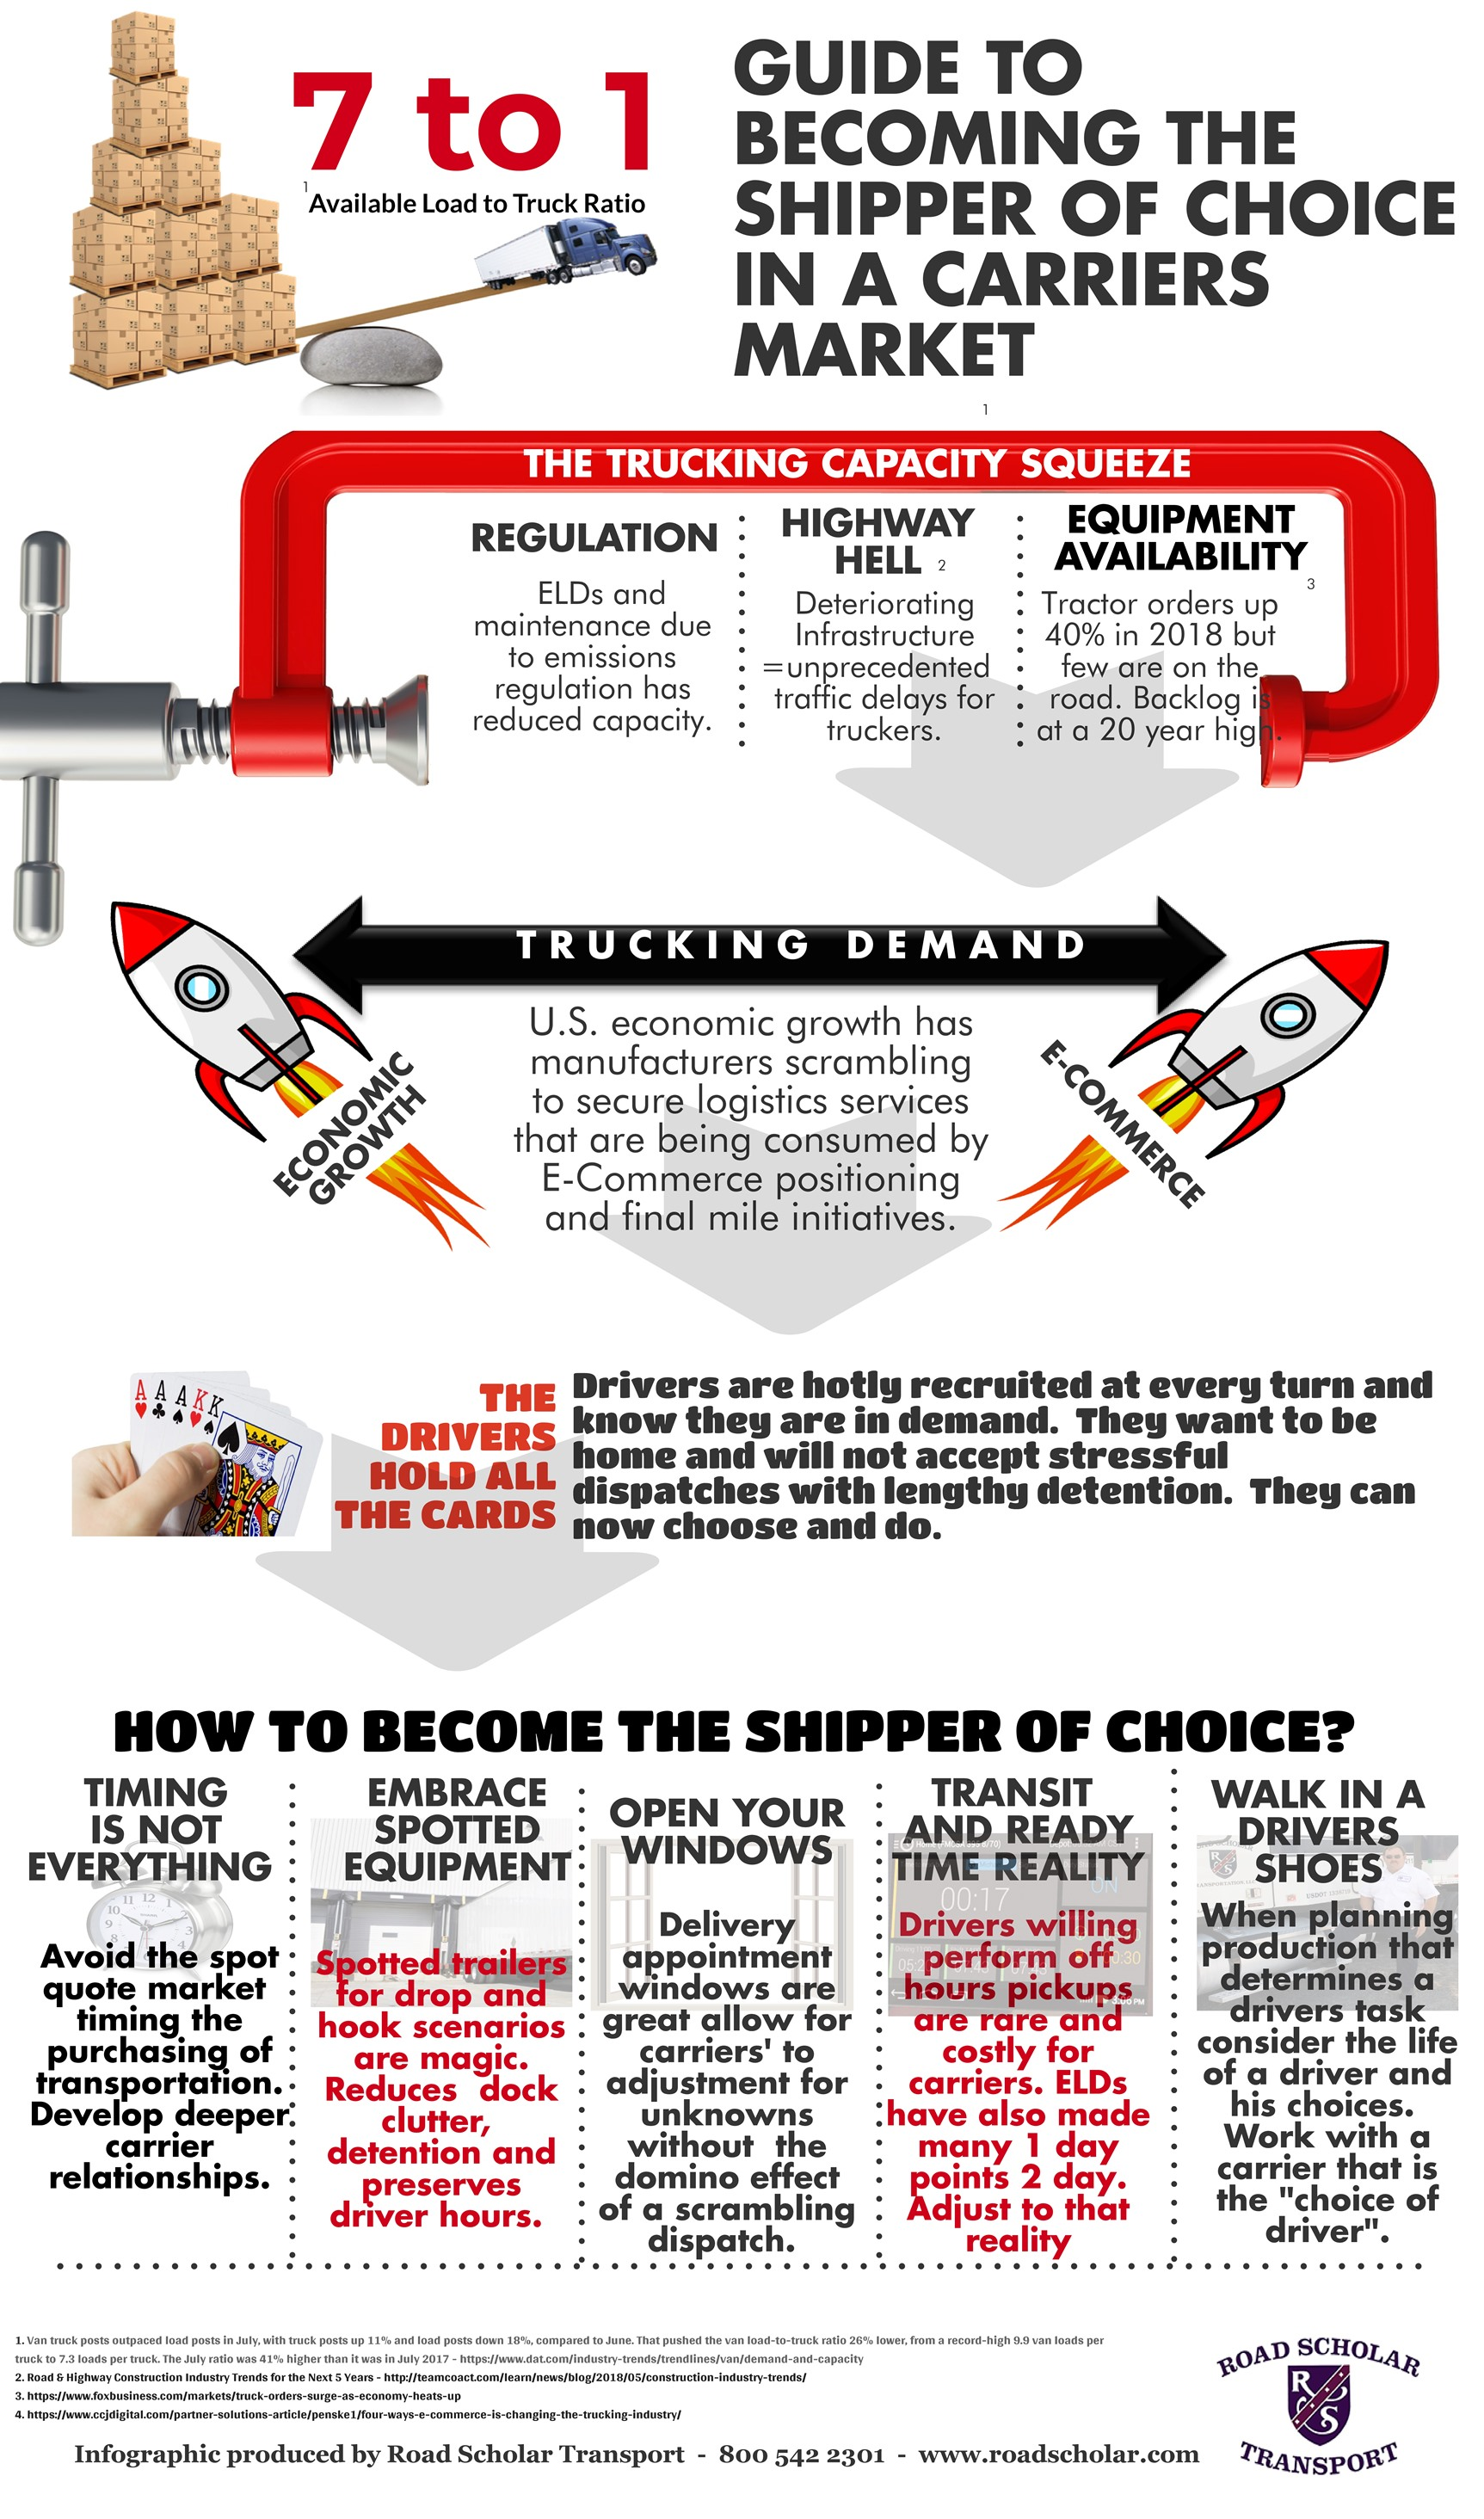 Shipper+Guide+in+a+Carriers+Market_revised-page-0.jpg